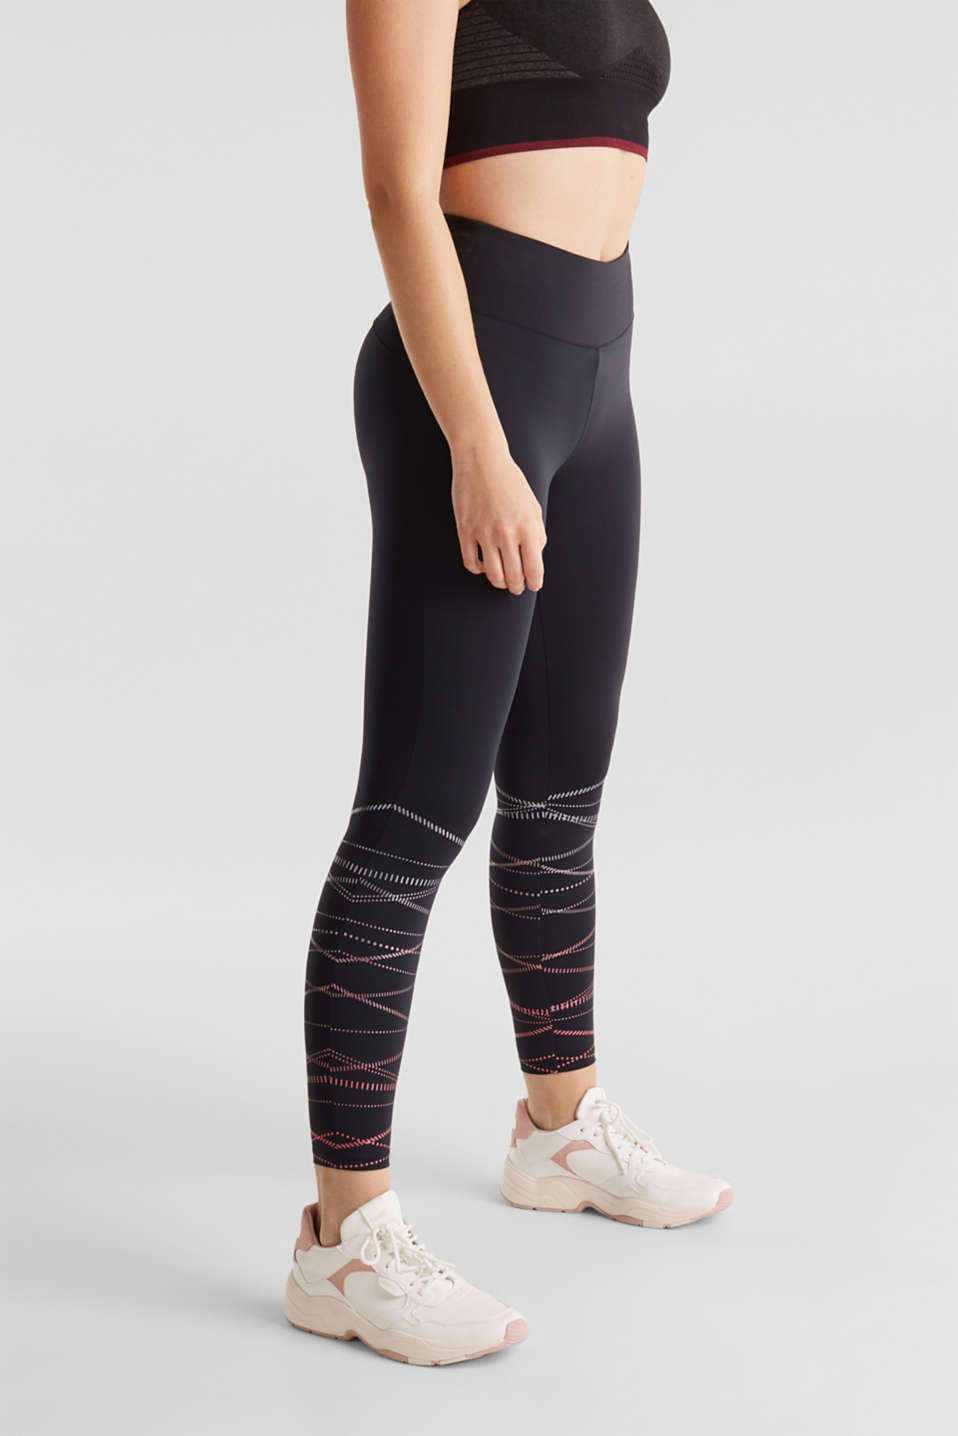 Compression leggings with shiny stripes, E-DRY, BLACK, detail image number 5